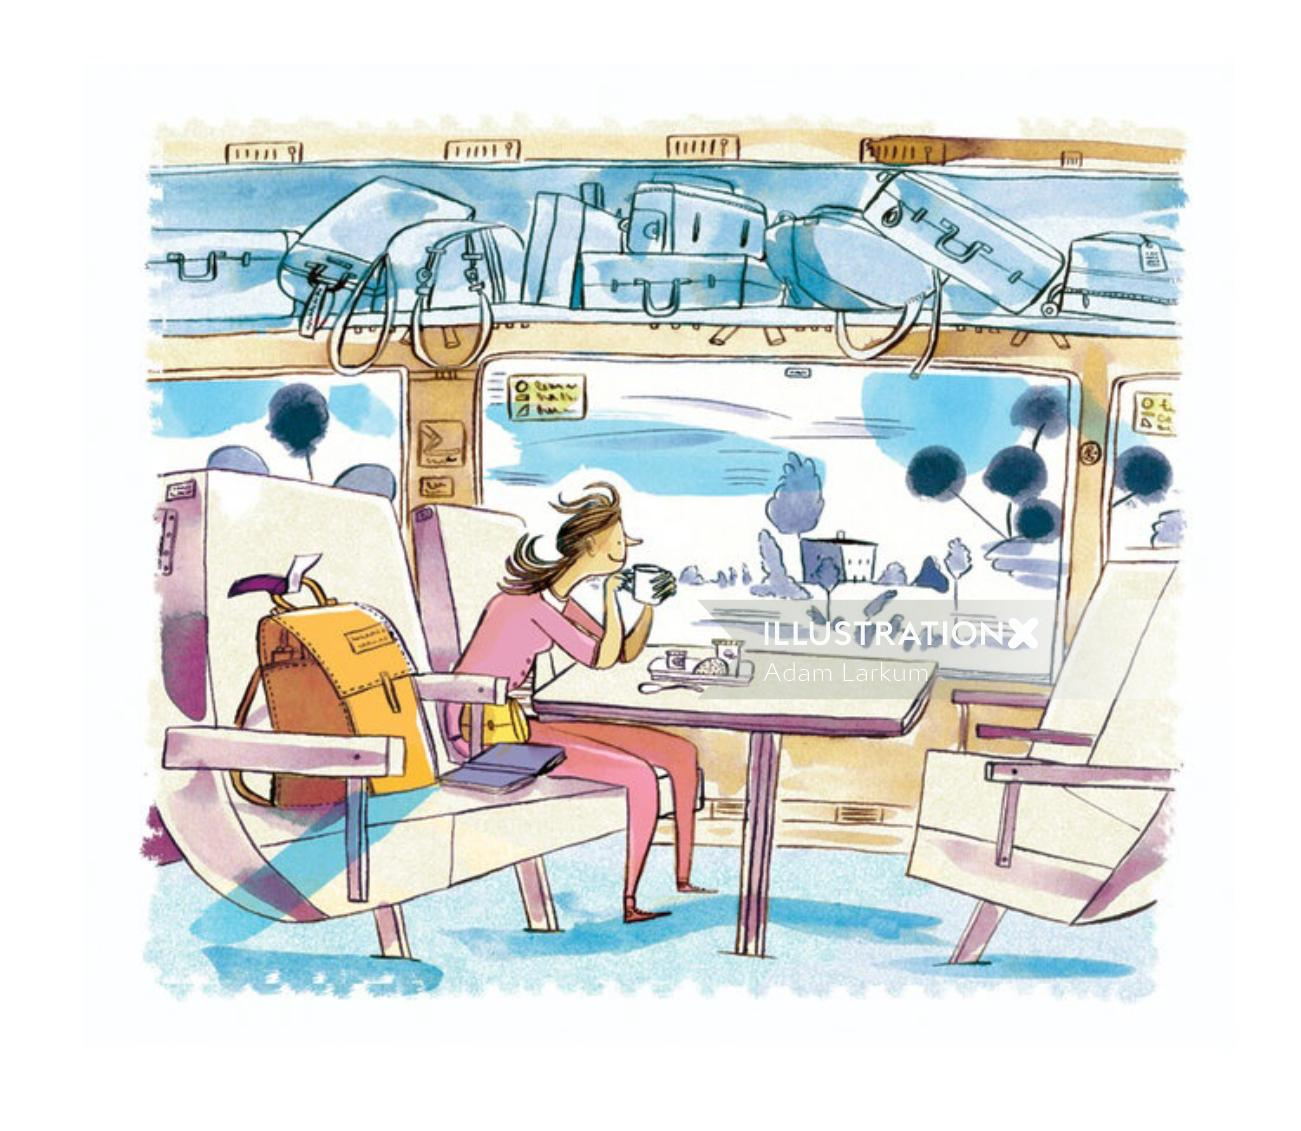 Editorial art of traveling on train for Gulfshore Life magazine